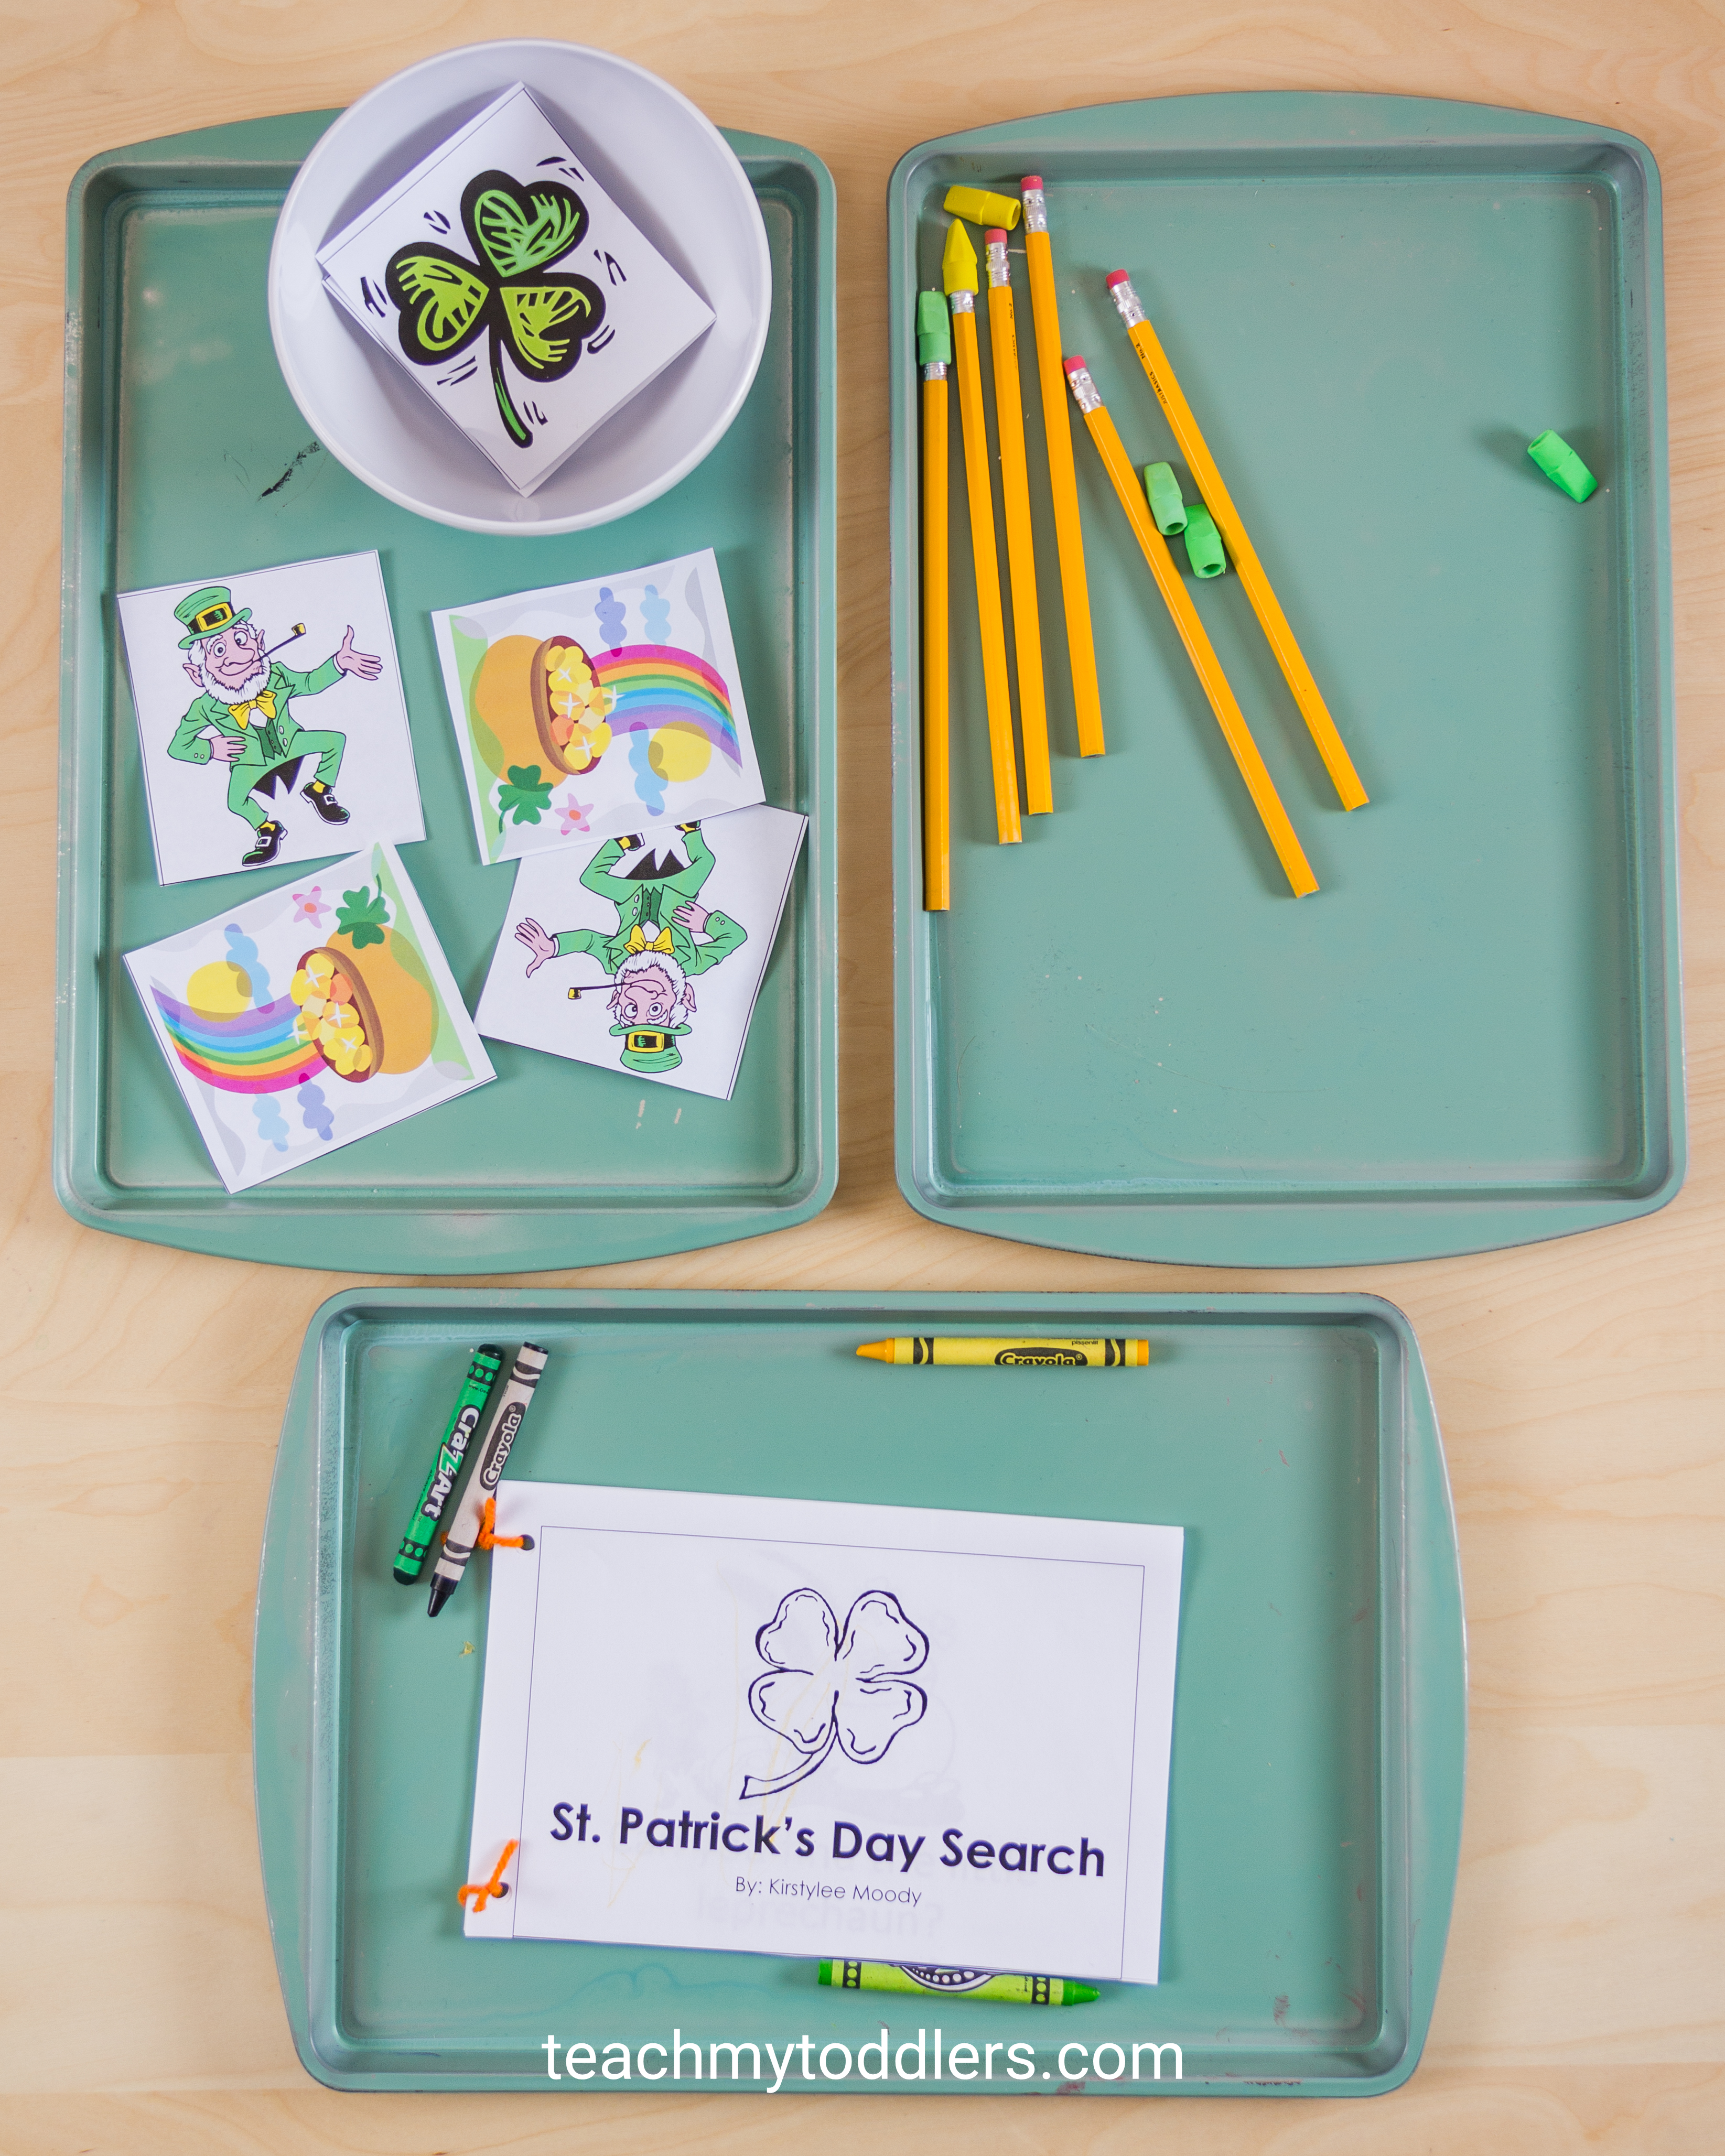 Learn how these St. Patrick's Day Activities can teach toddlers about St. Patrick's Day